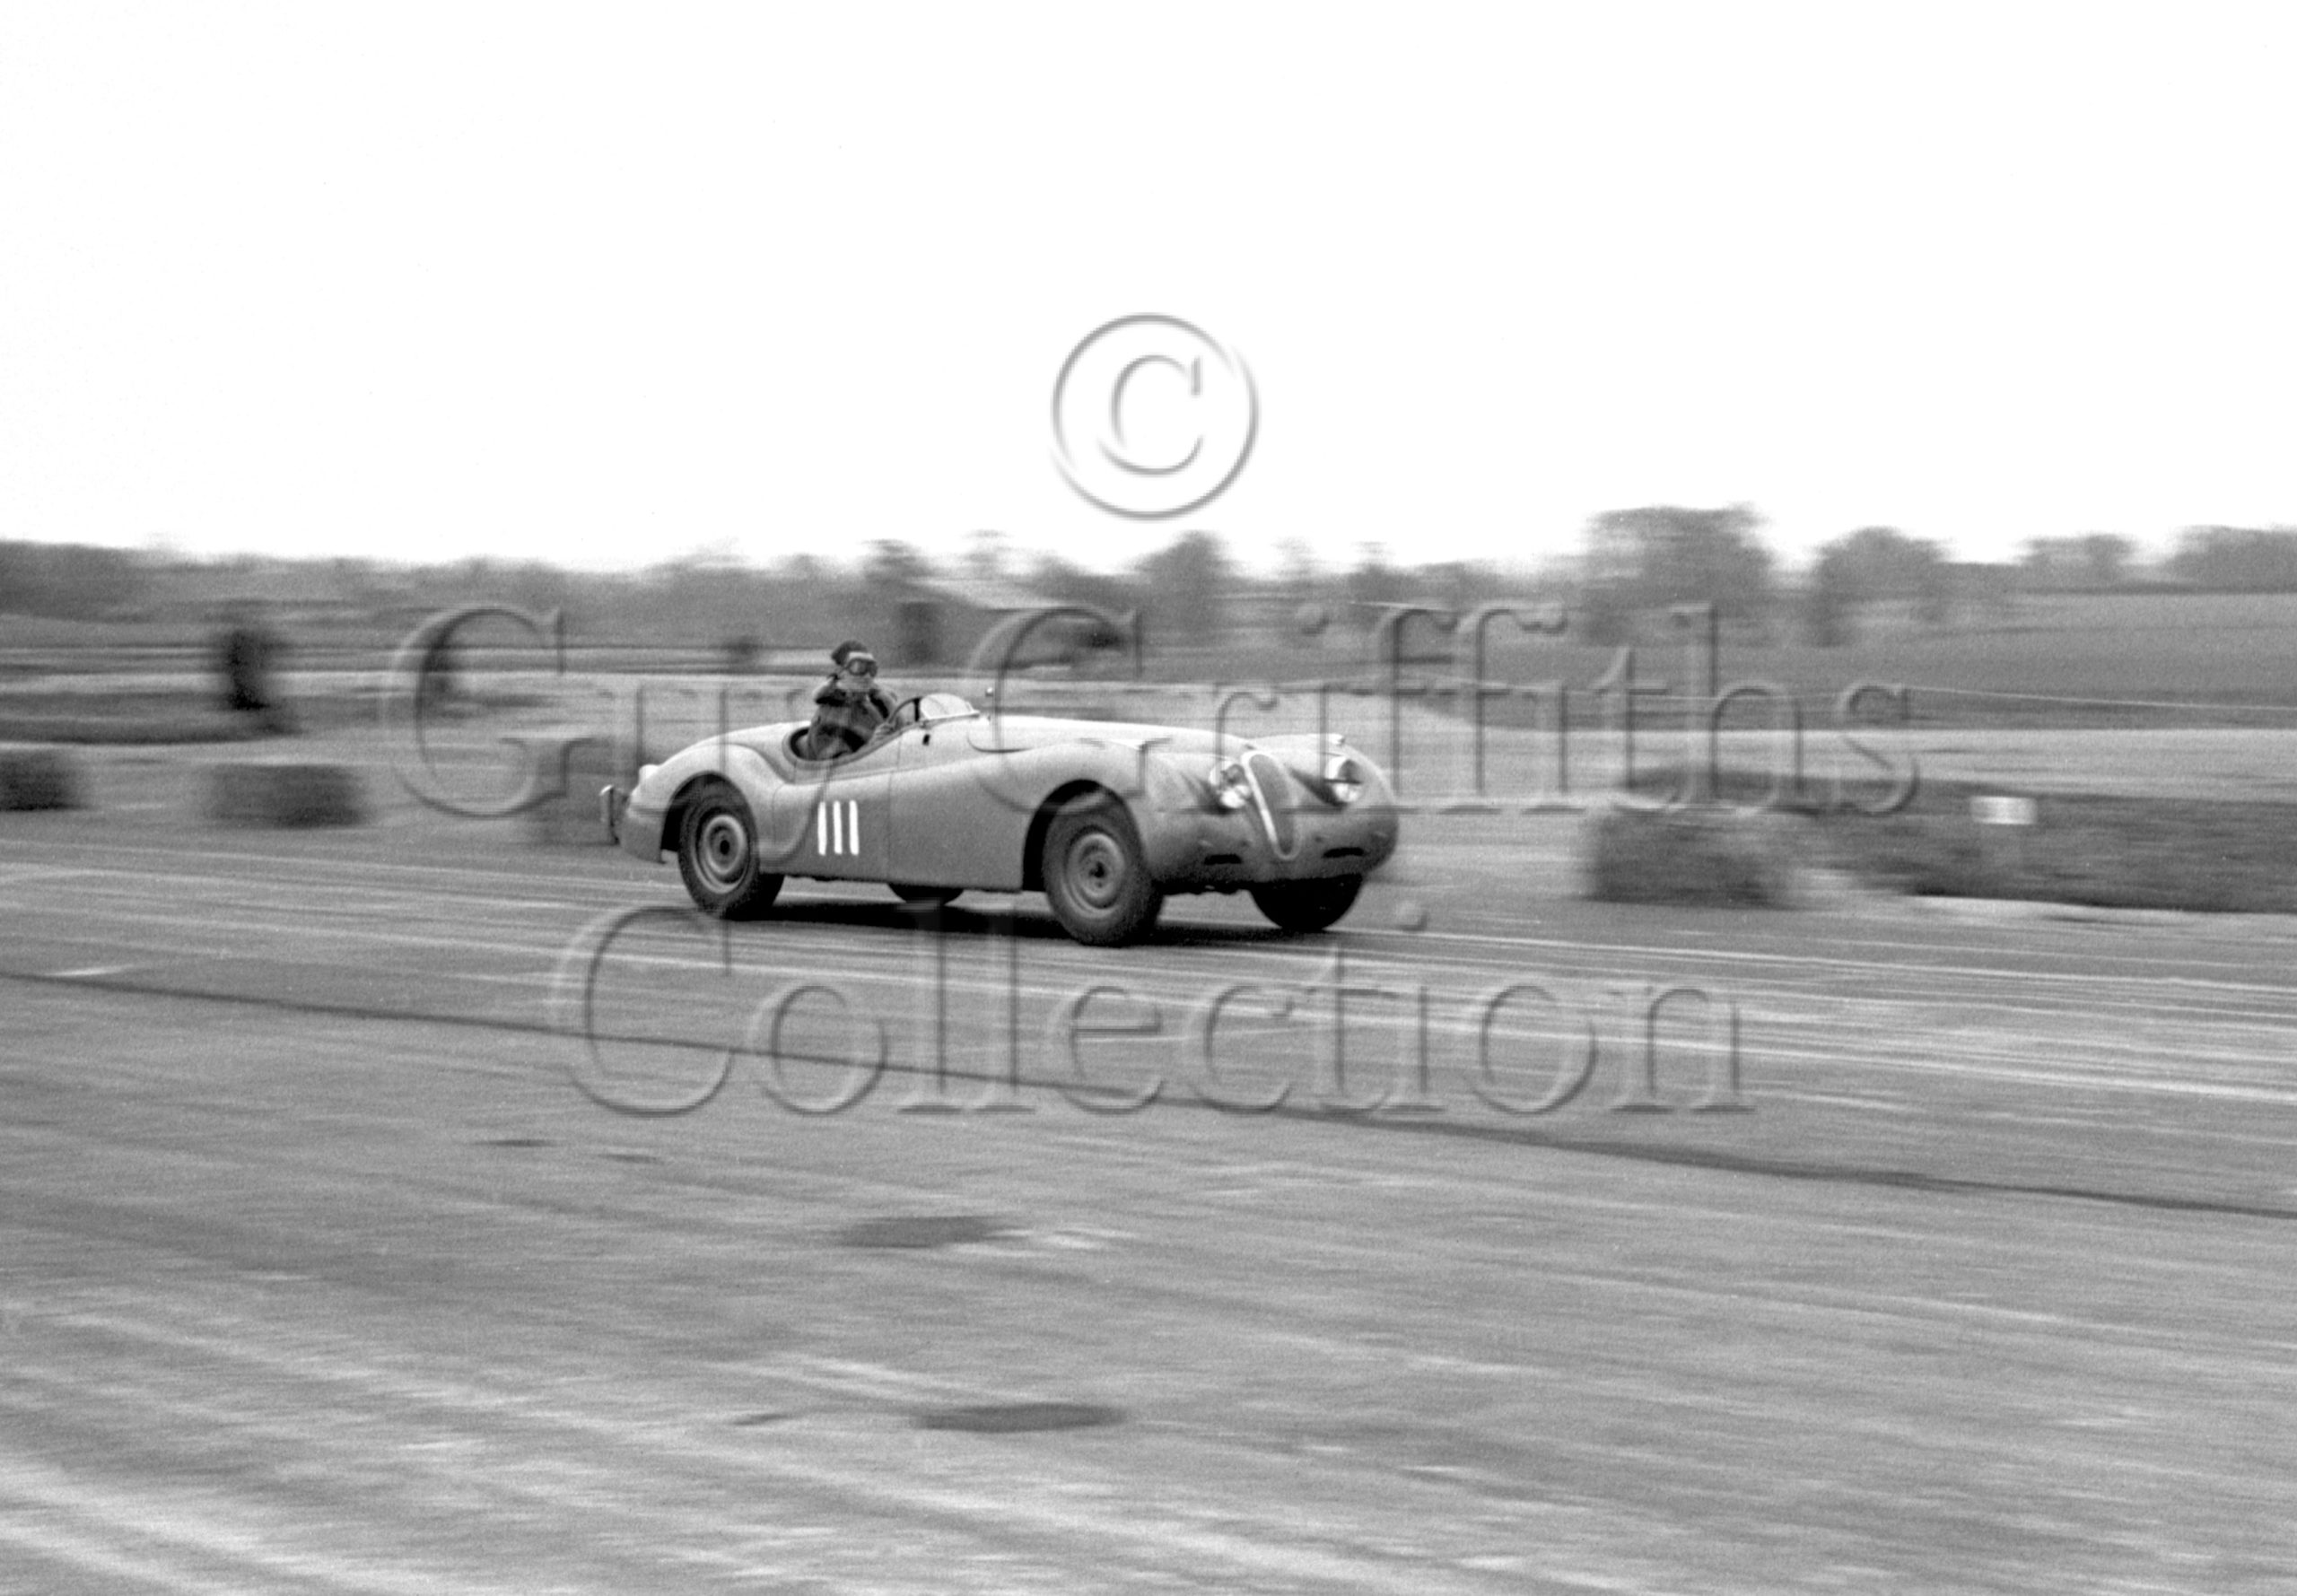 44-184–D-Pierpoint–Jaguar-XK-120-LXO-126–Boreham–26-05-1951.jpg - Guy Griffiths Collection